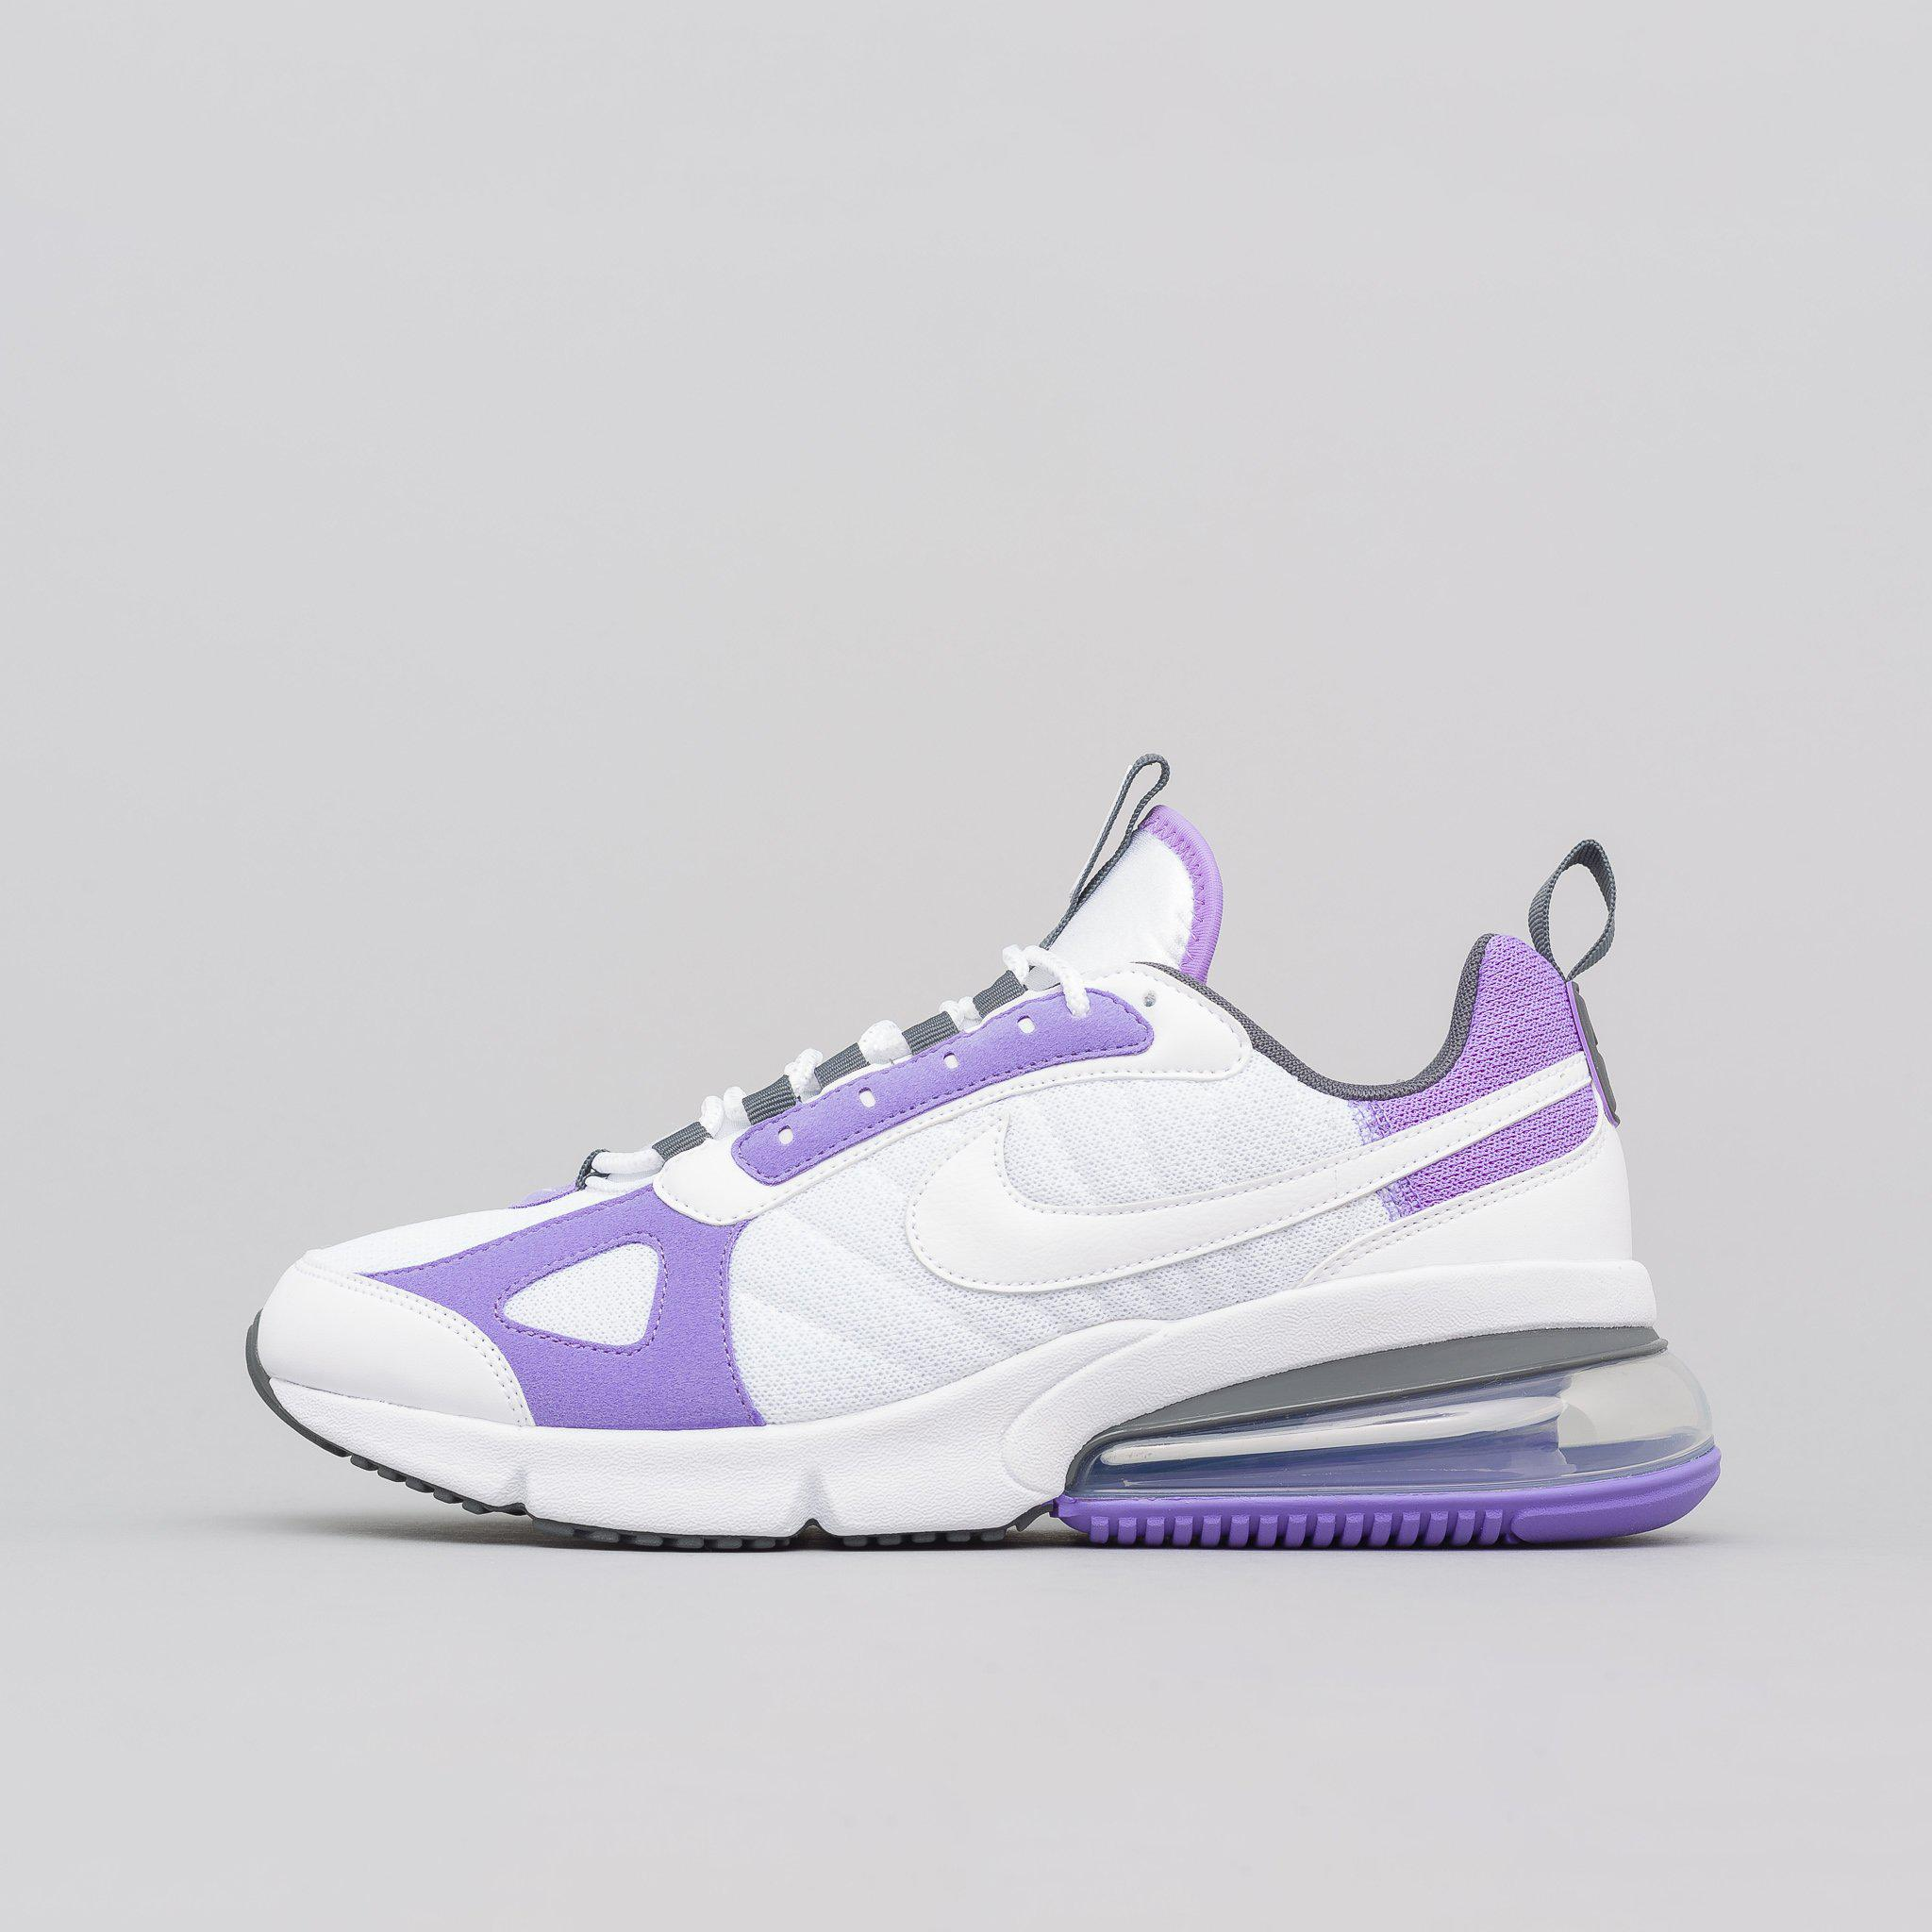 Nike Rubber Air Max 270 Futura In Whiteviolet for Men Lyst